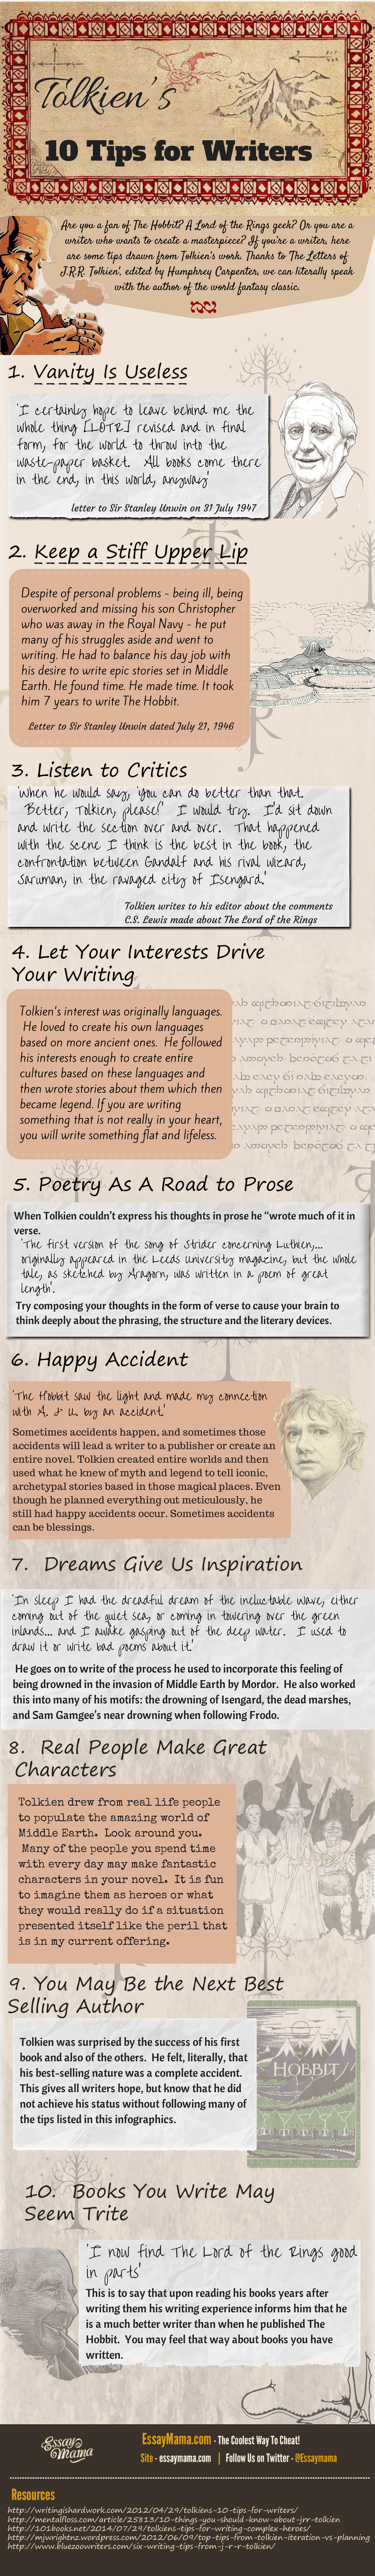 J.R.R. Tolkien's Writing Tips (Infographic)